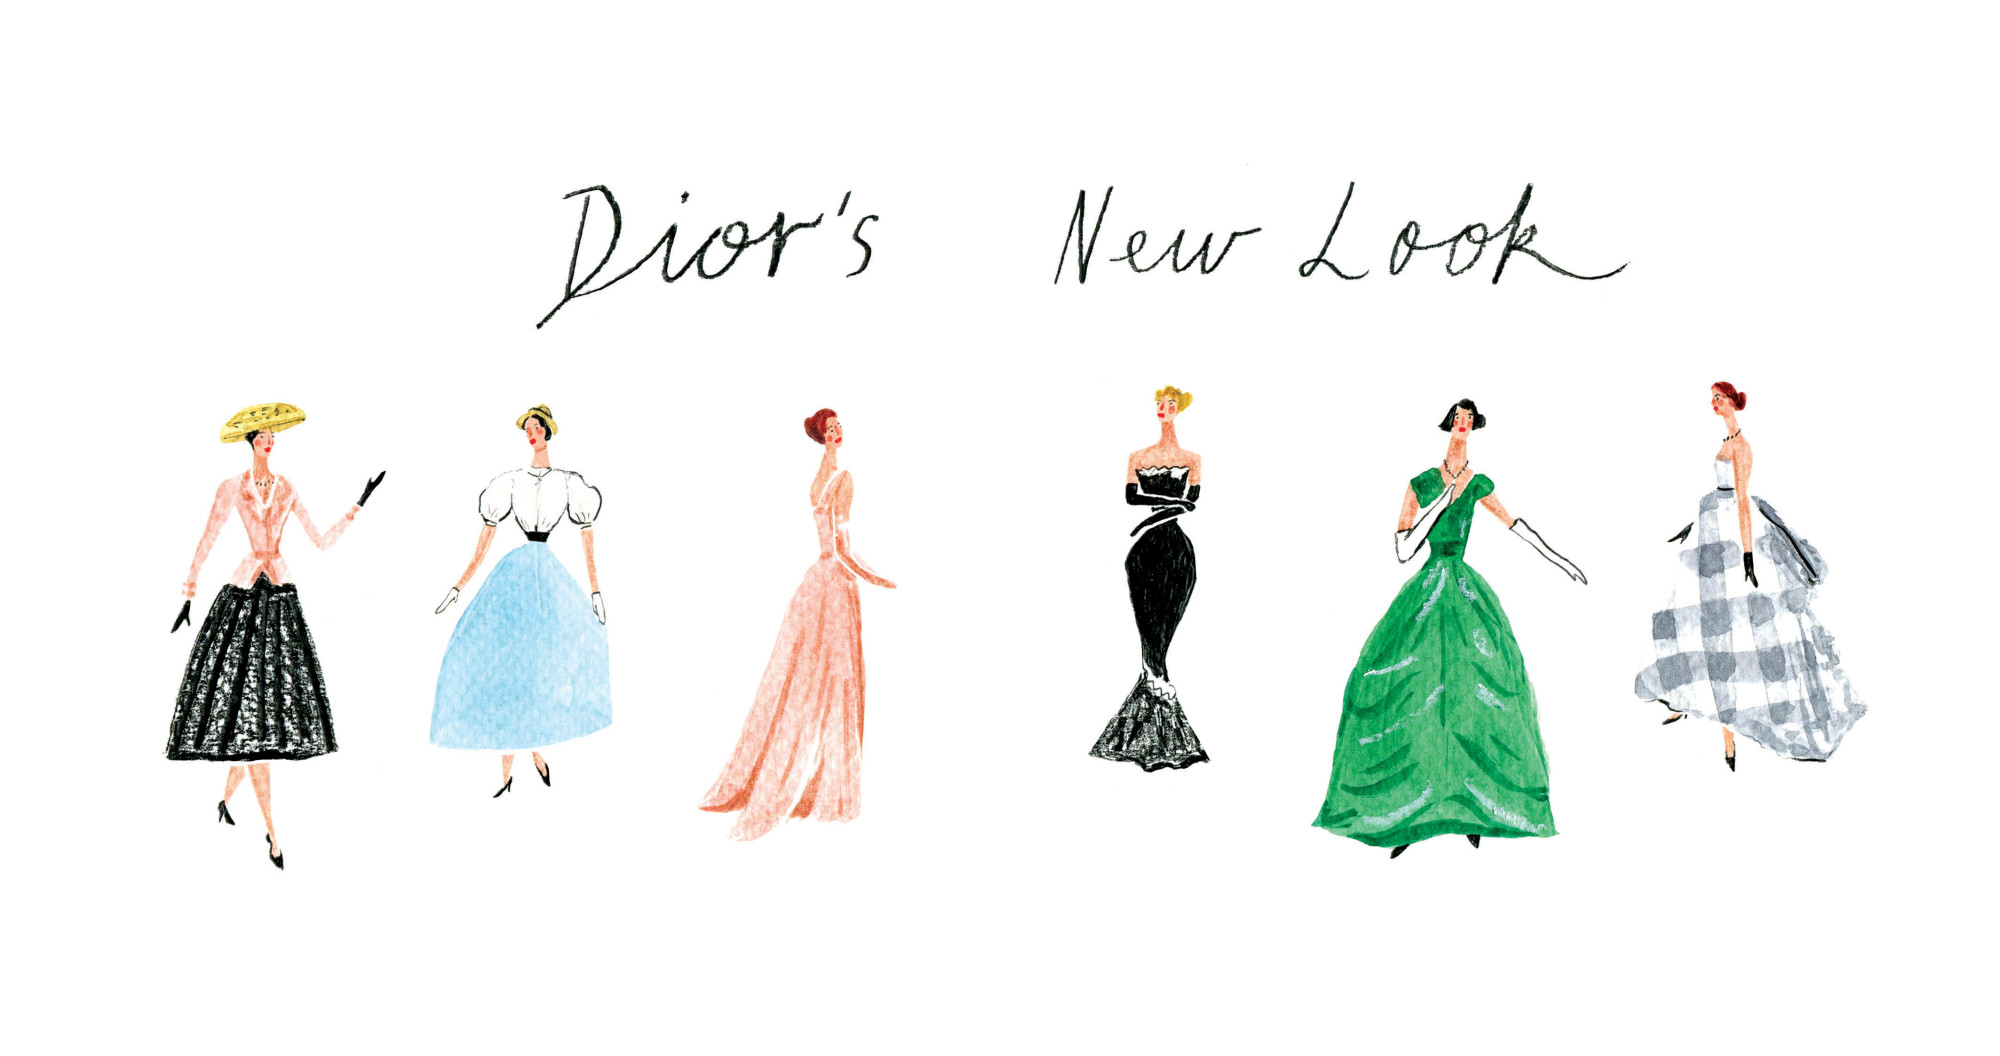 Coco Chanel Illustrated Biography 4